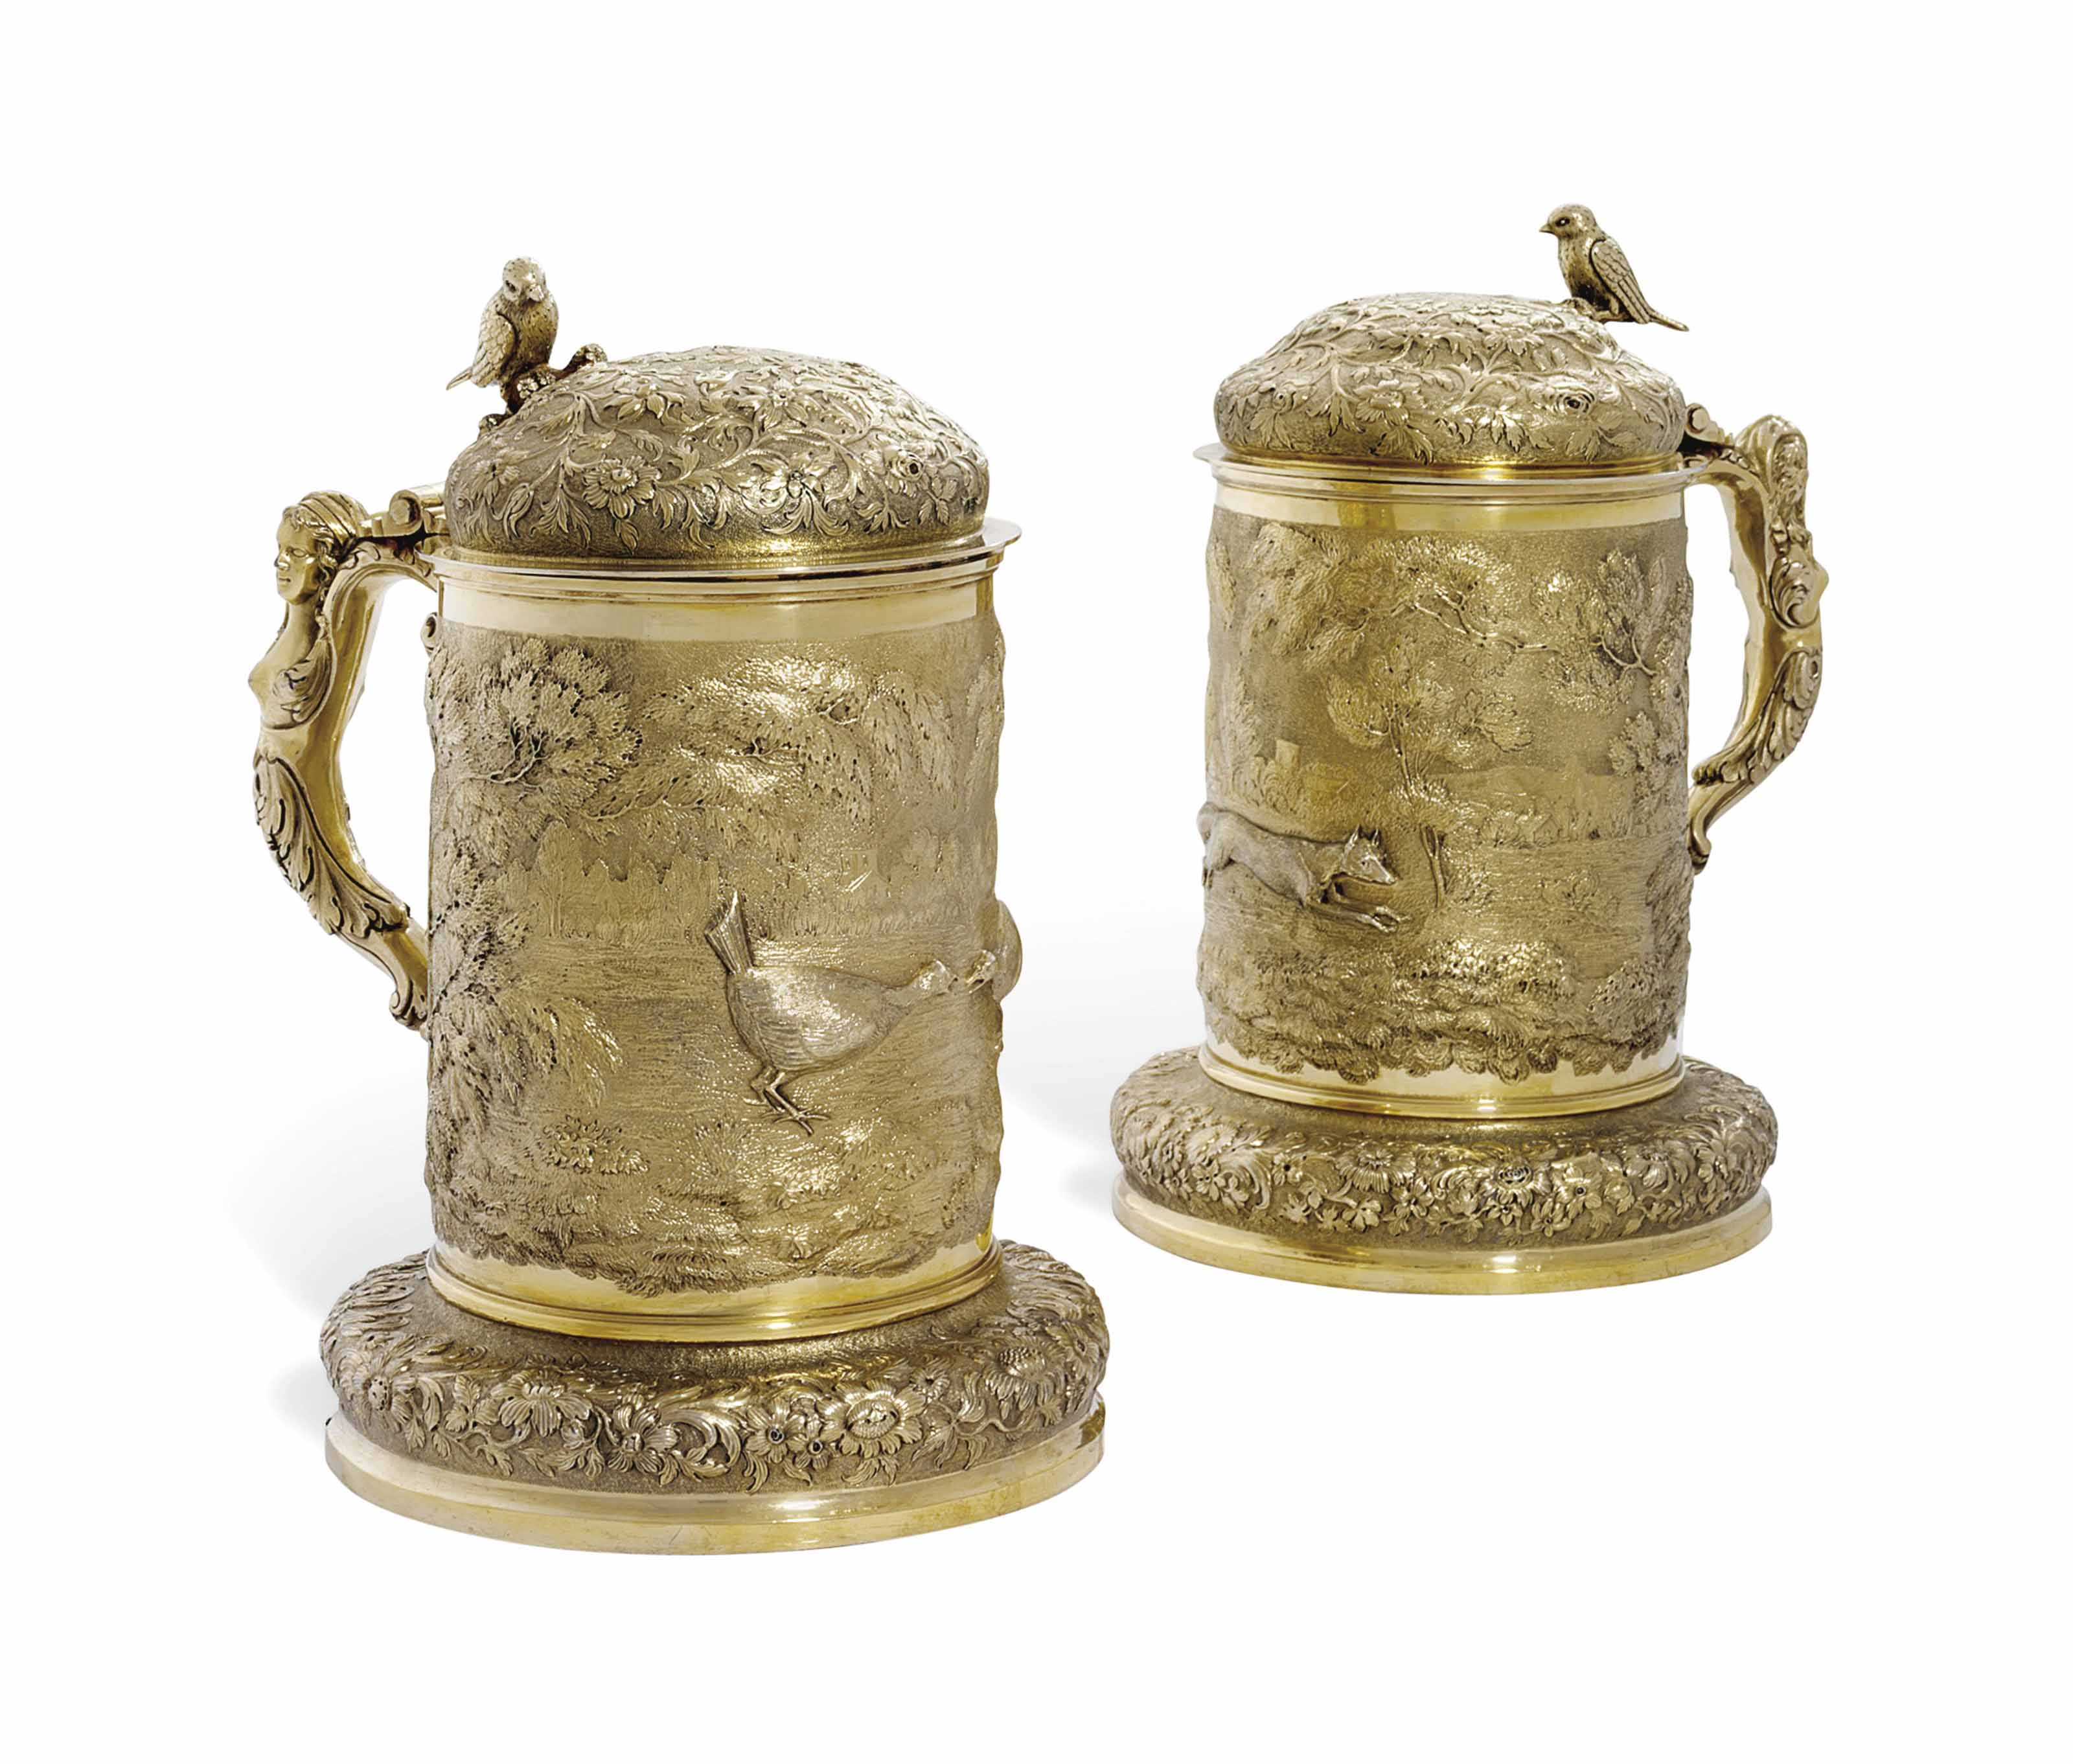 A PAIR OF GEORGE IV SILVER-GILT TANKARDS